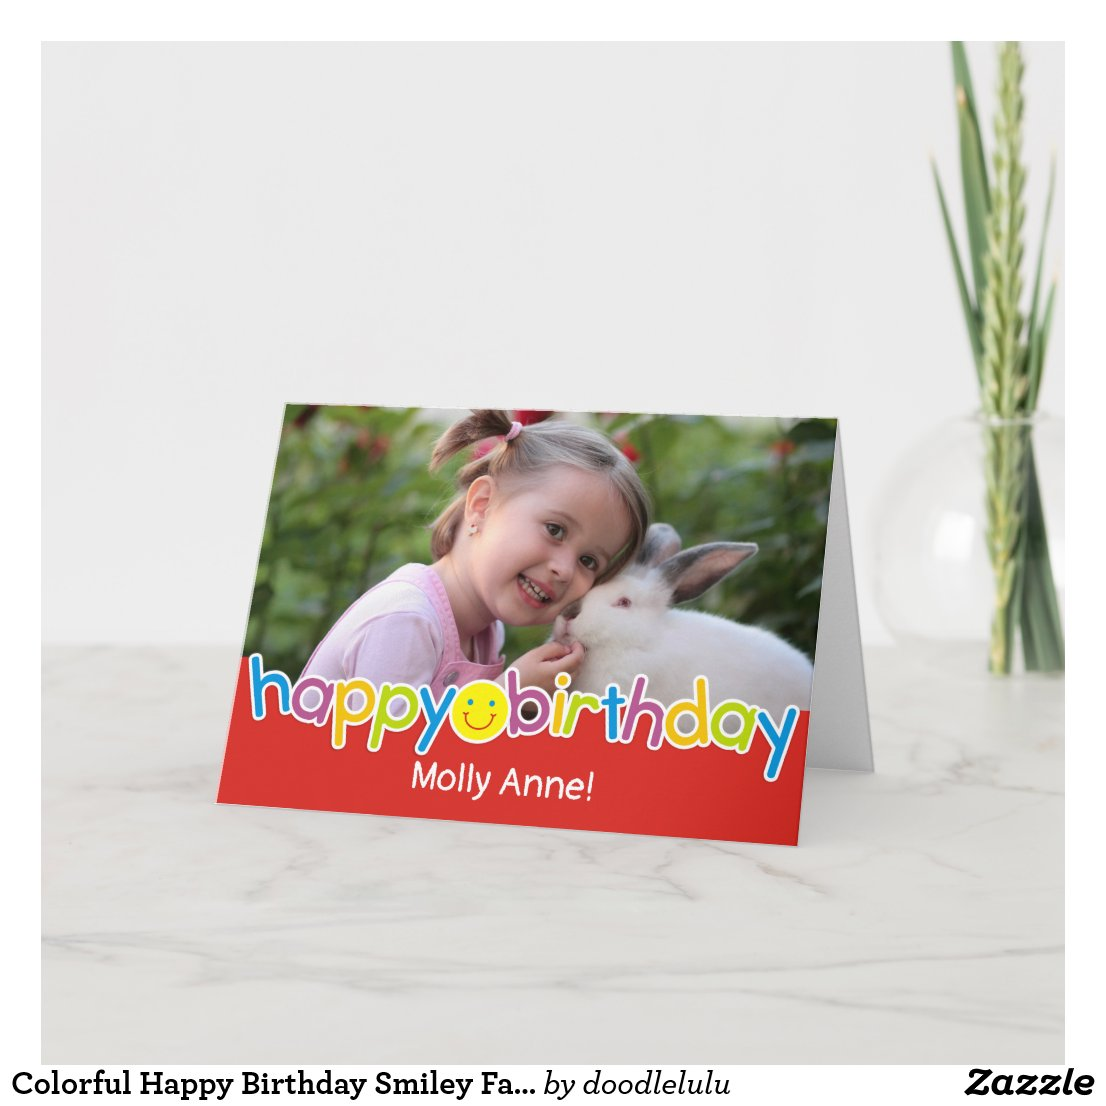 Colorful Happy Birthday Smiley Face Card